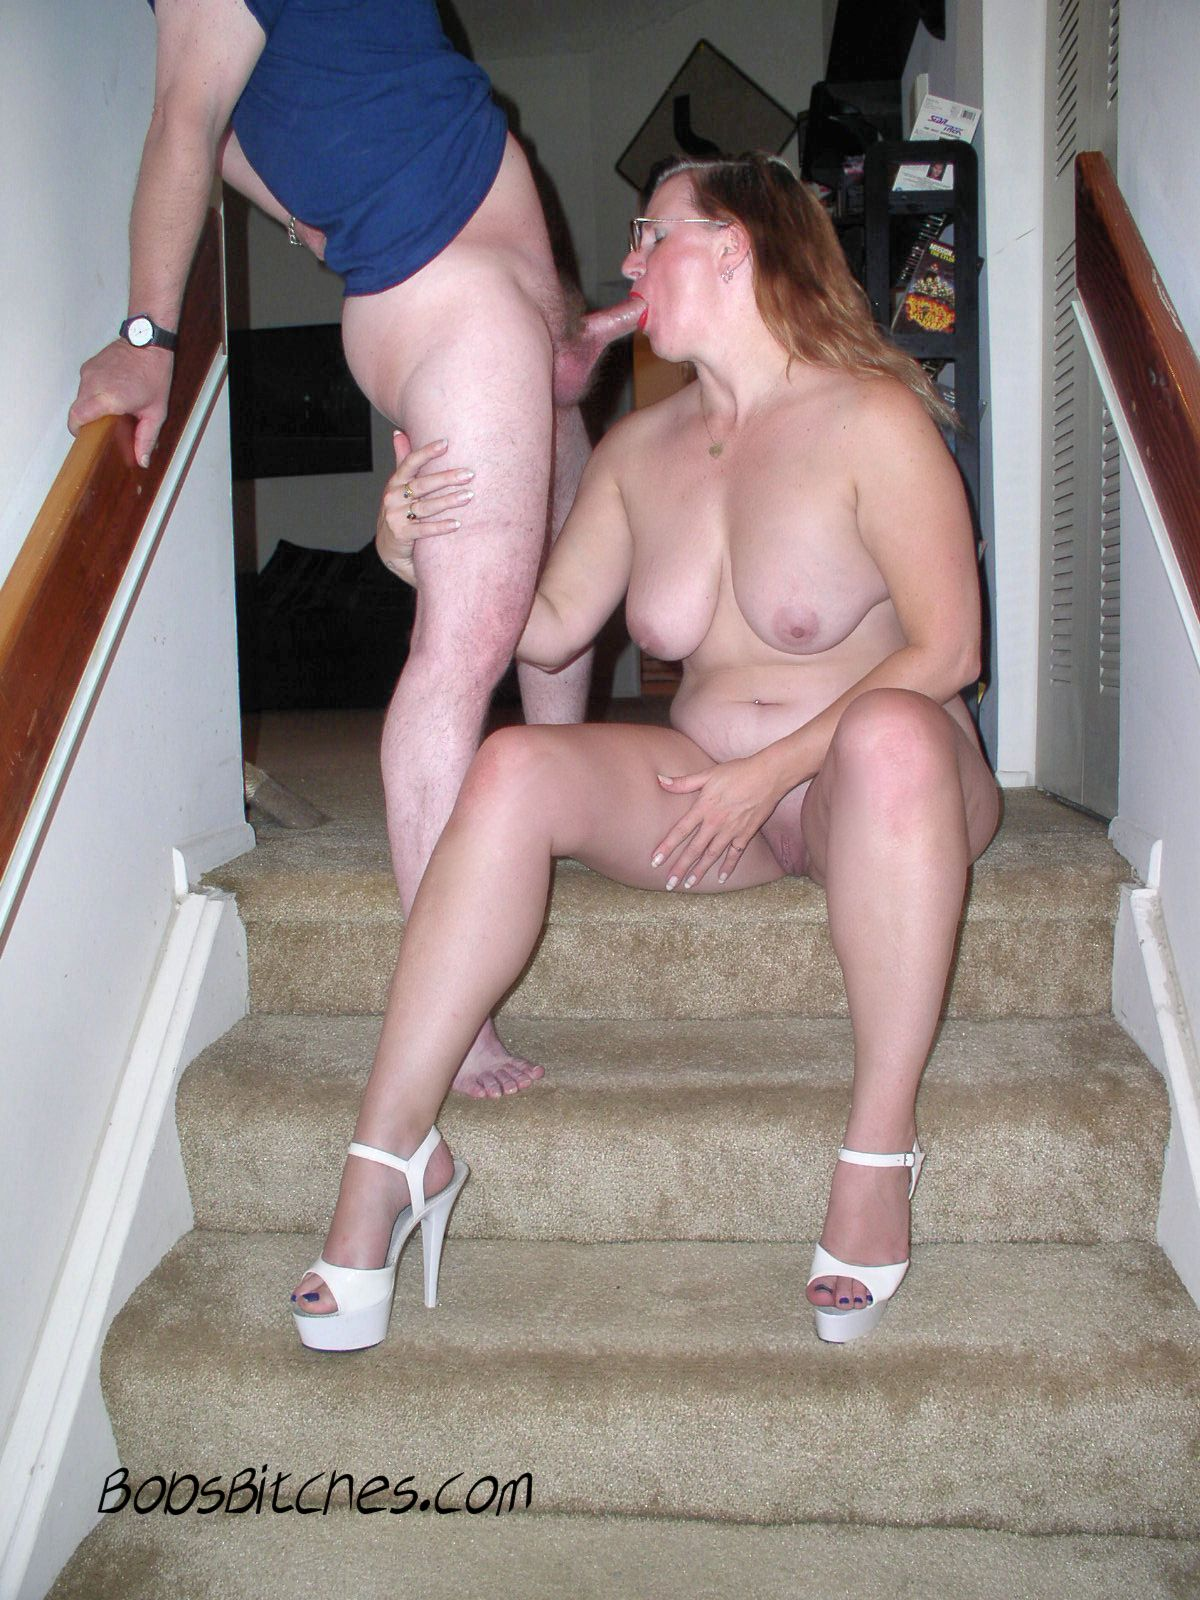 Setting on stairs, bitch Karen, the  sex addict milf sucks my dicks spreading her high heeled legs exposing her pussy.